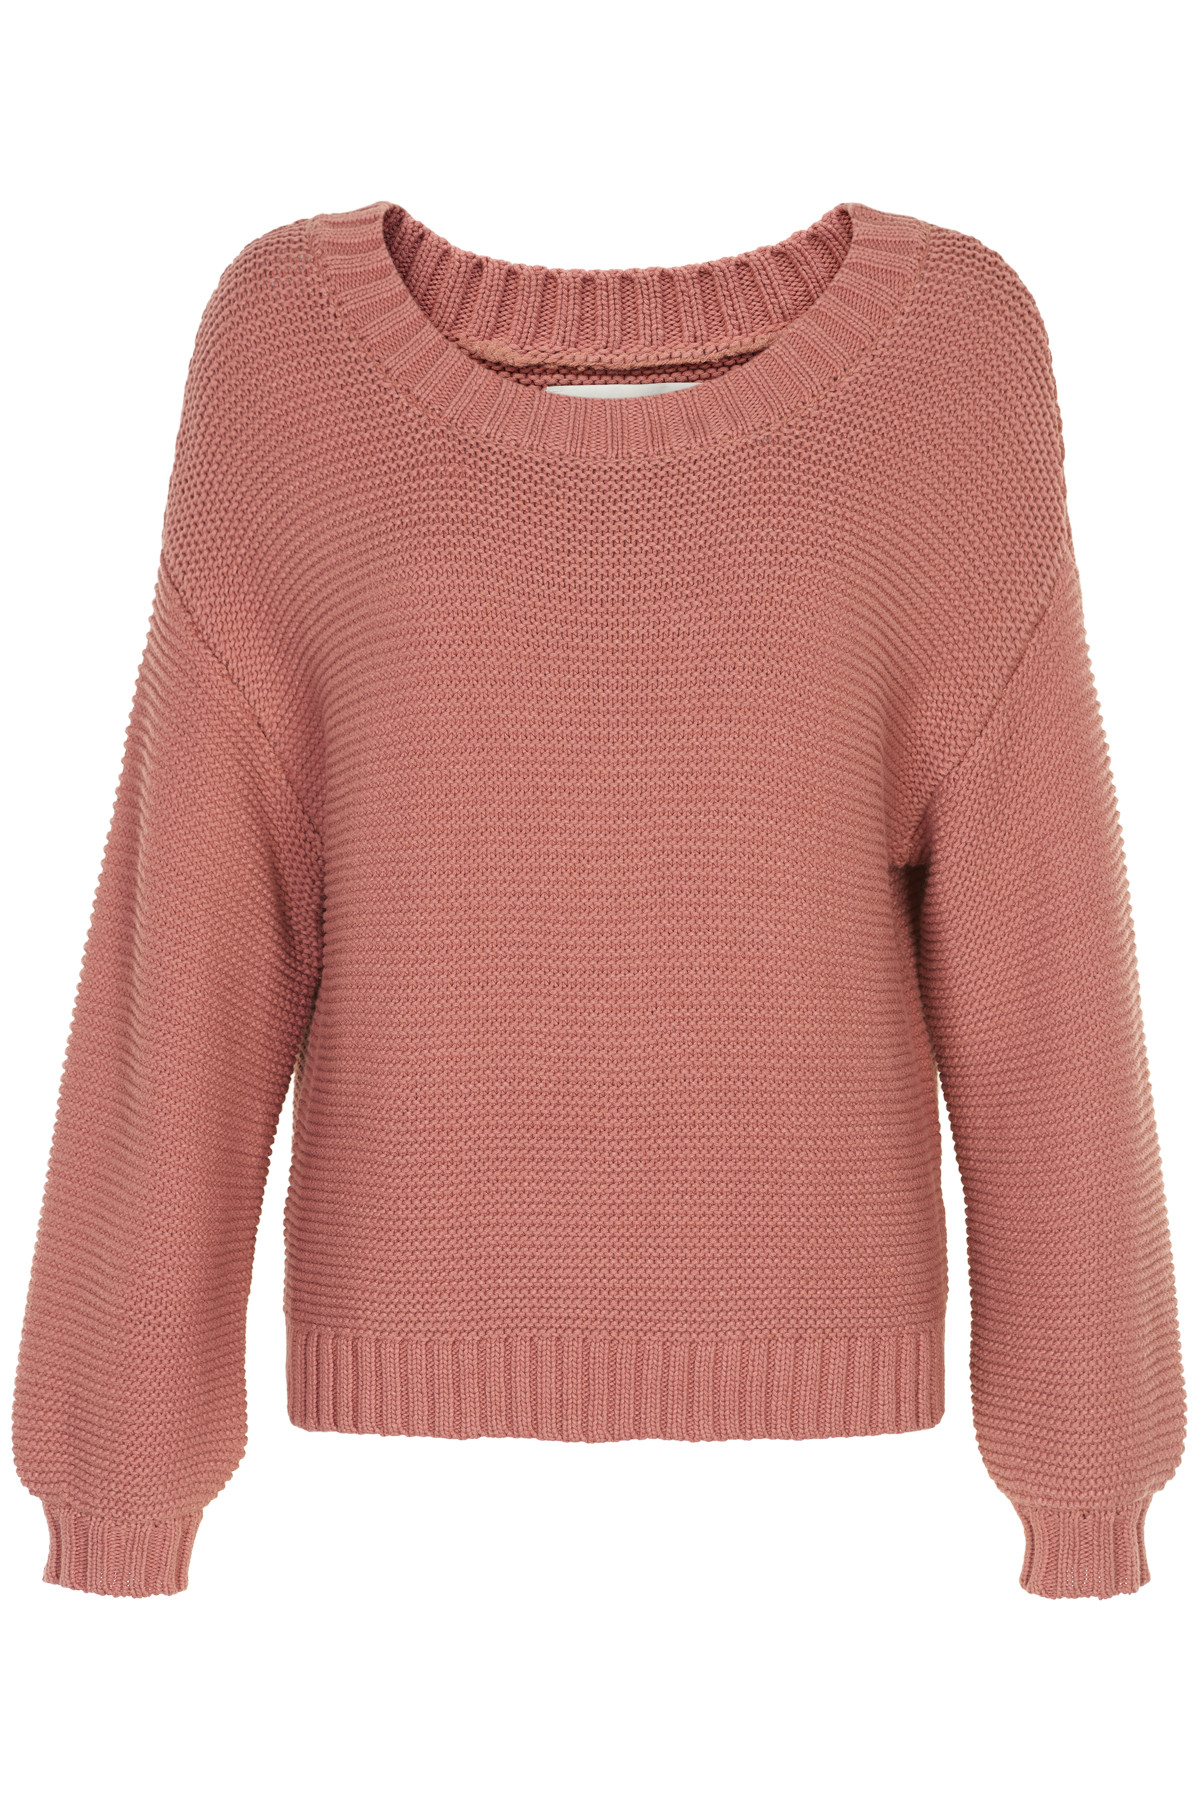 Image of   AND LESS RAIMONDO PULLOVER 5219206 A (Ash Rose, M)